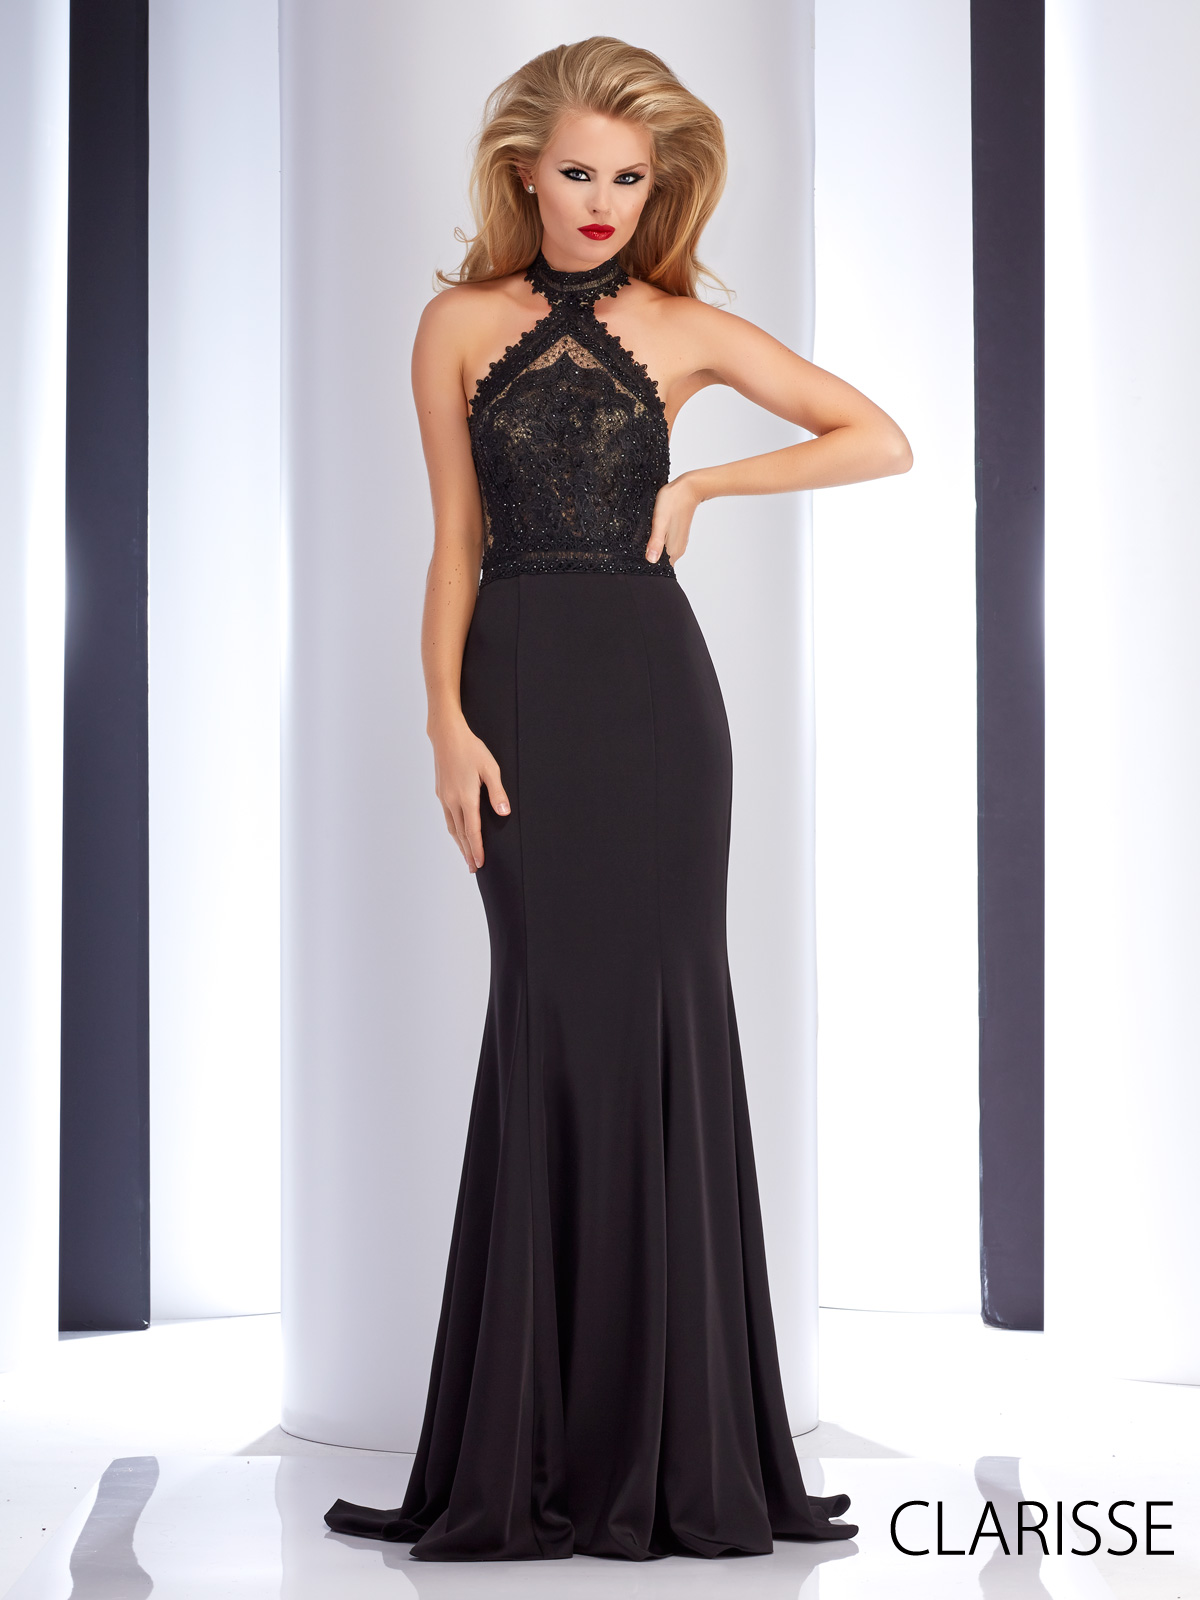 Clarisse couture prom dress style long simple and